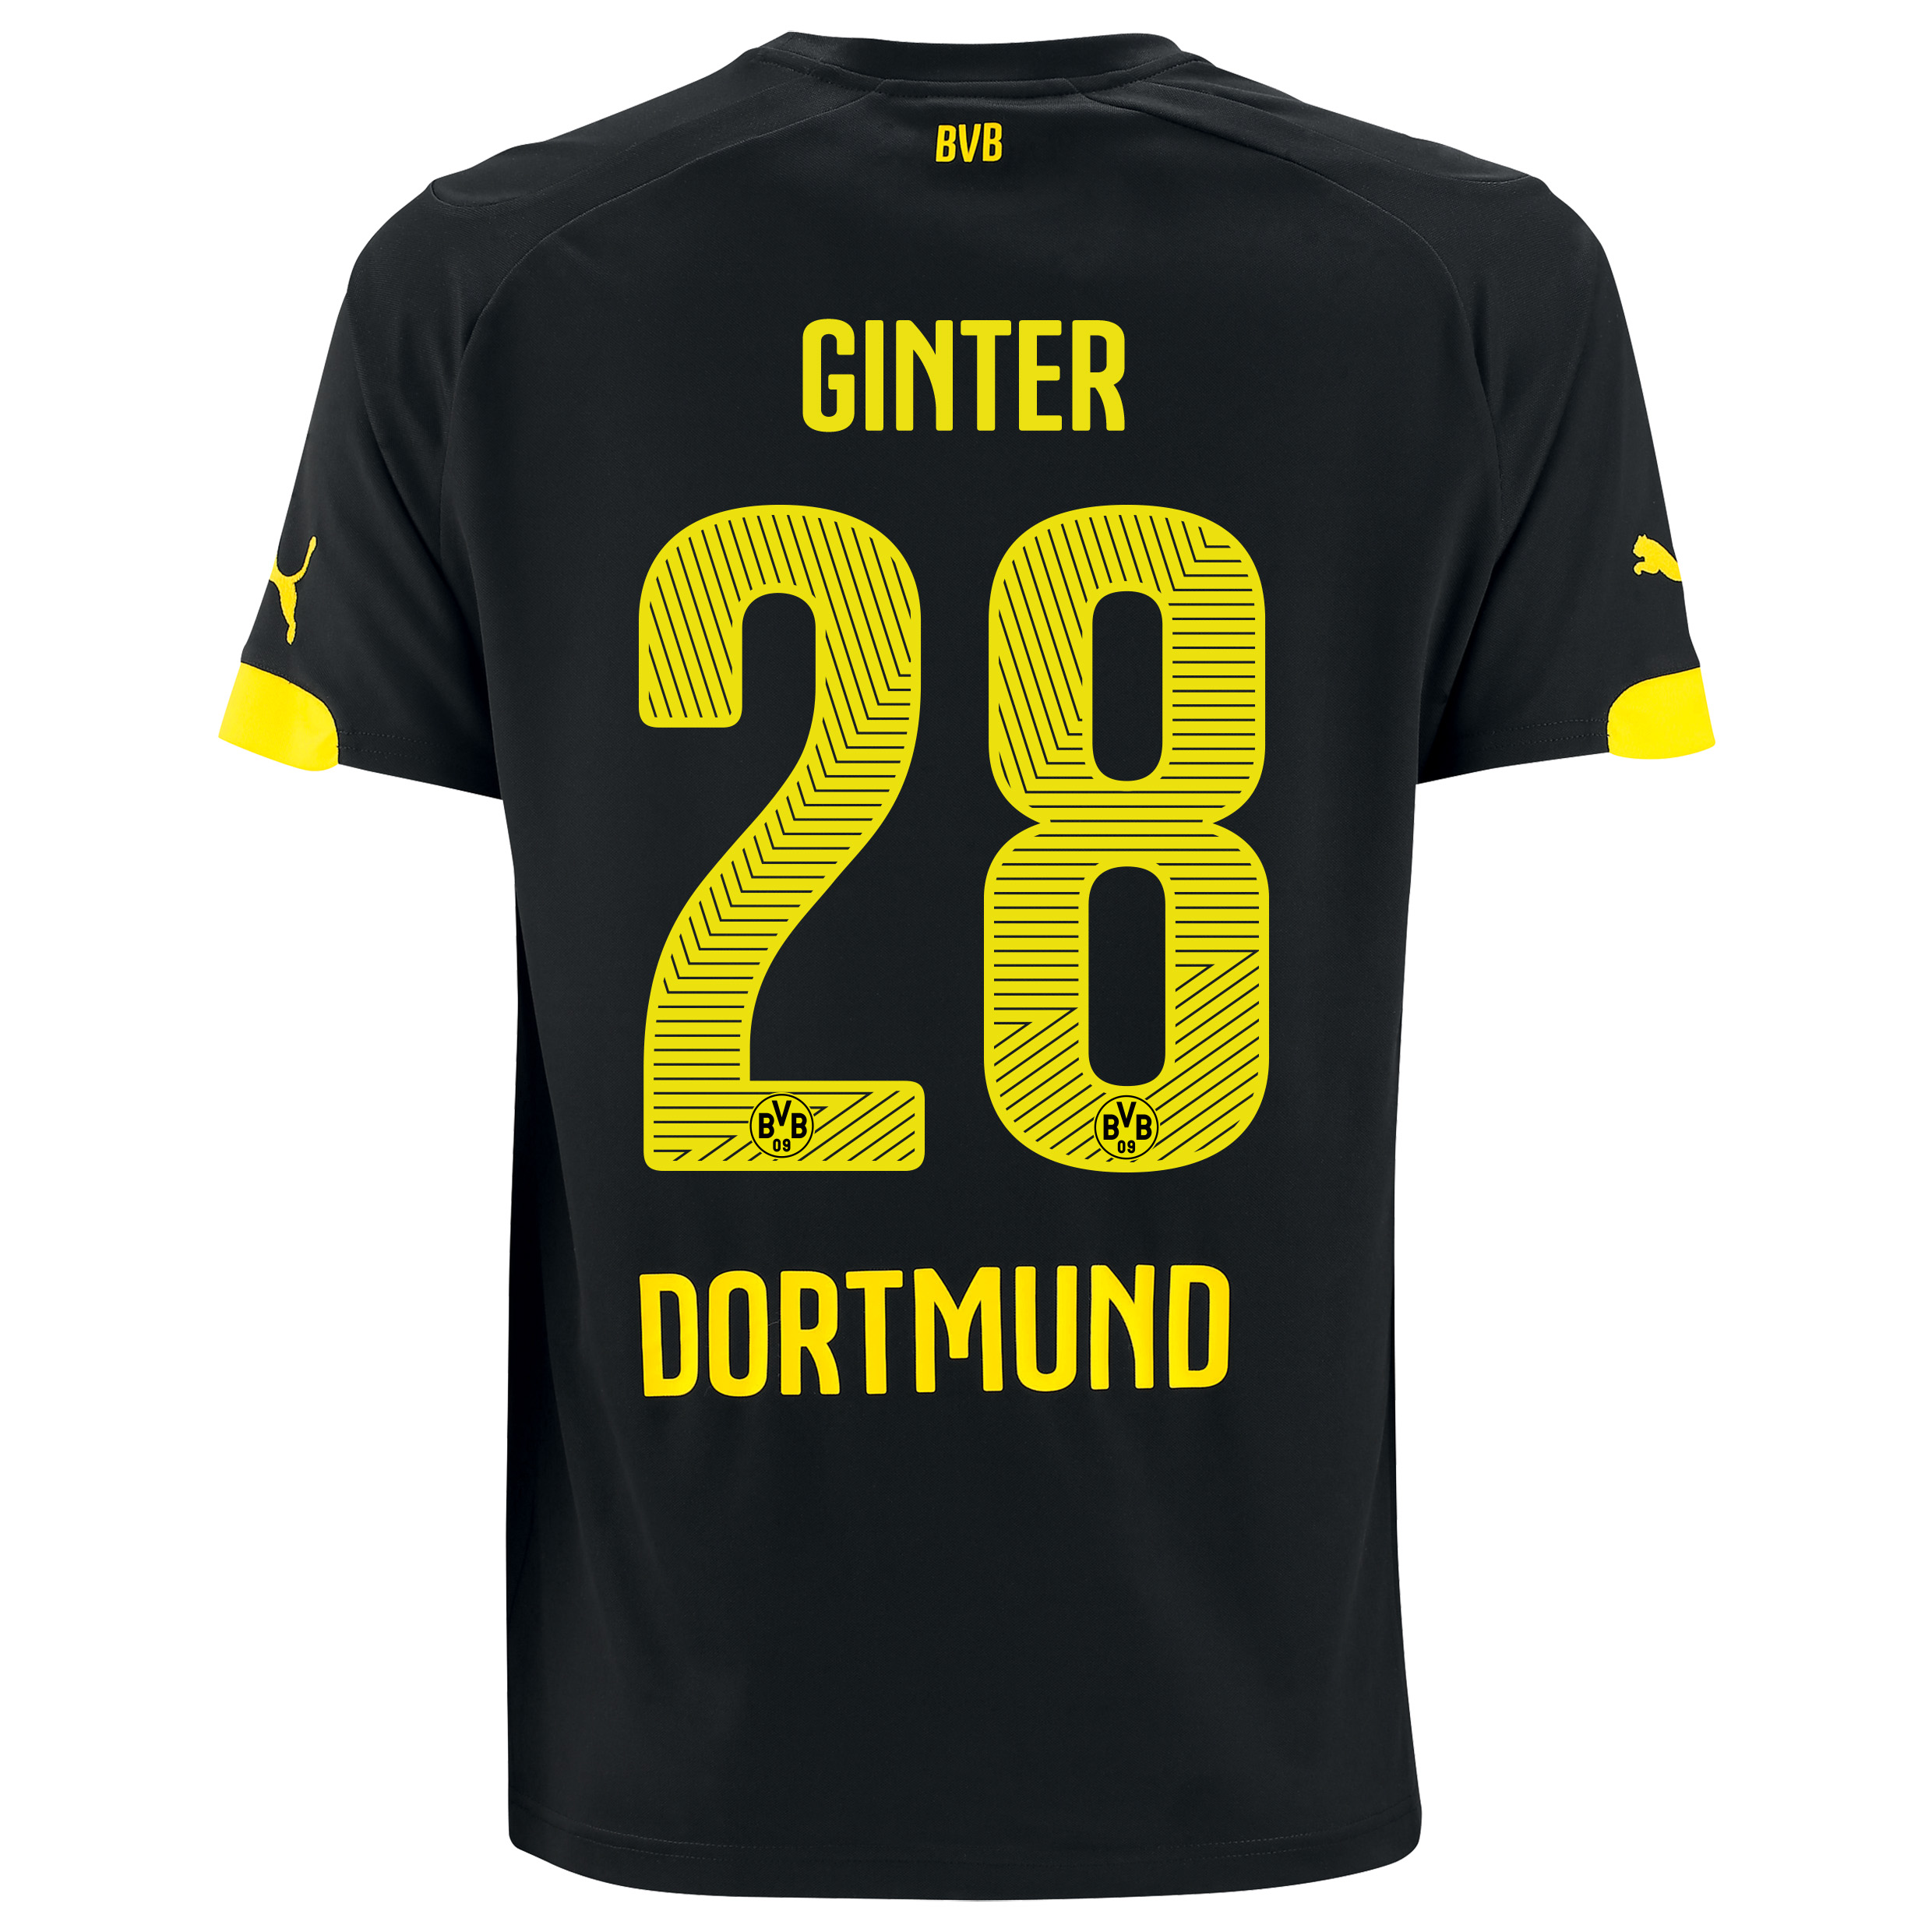 BVB Away Shirt 2014/15 with Matthias Ginter 28 printing